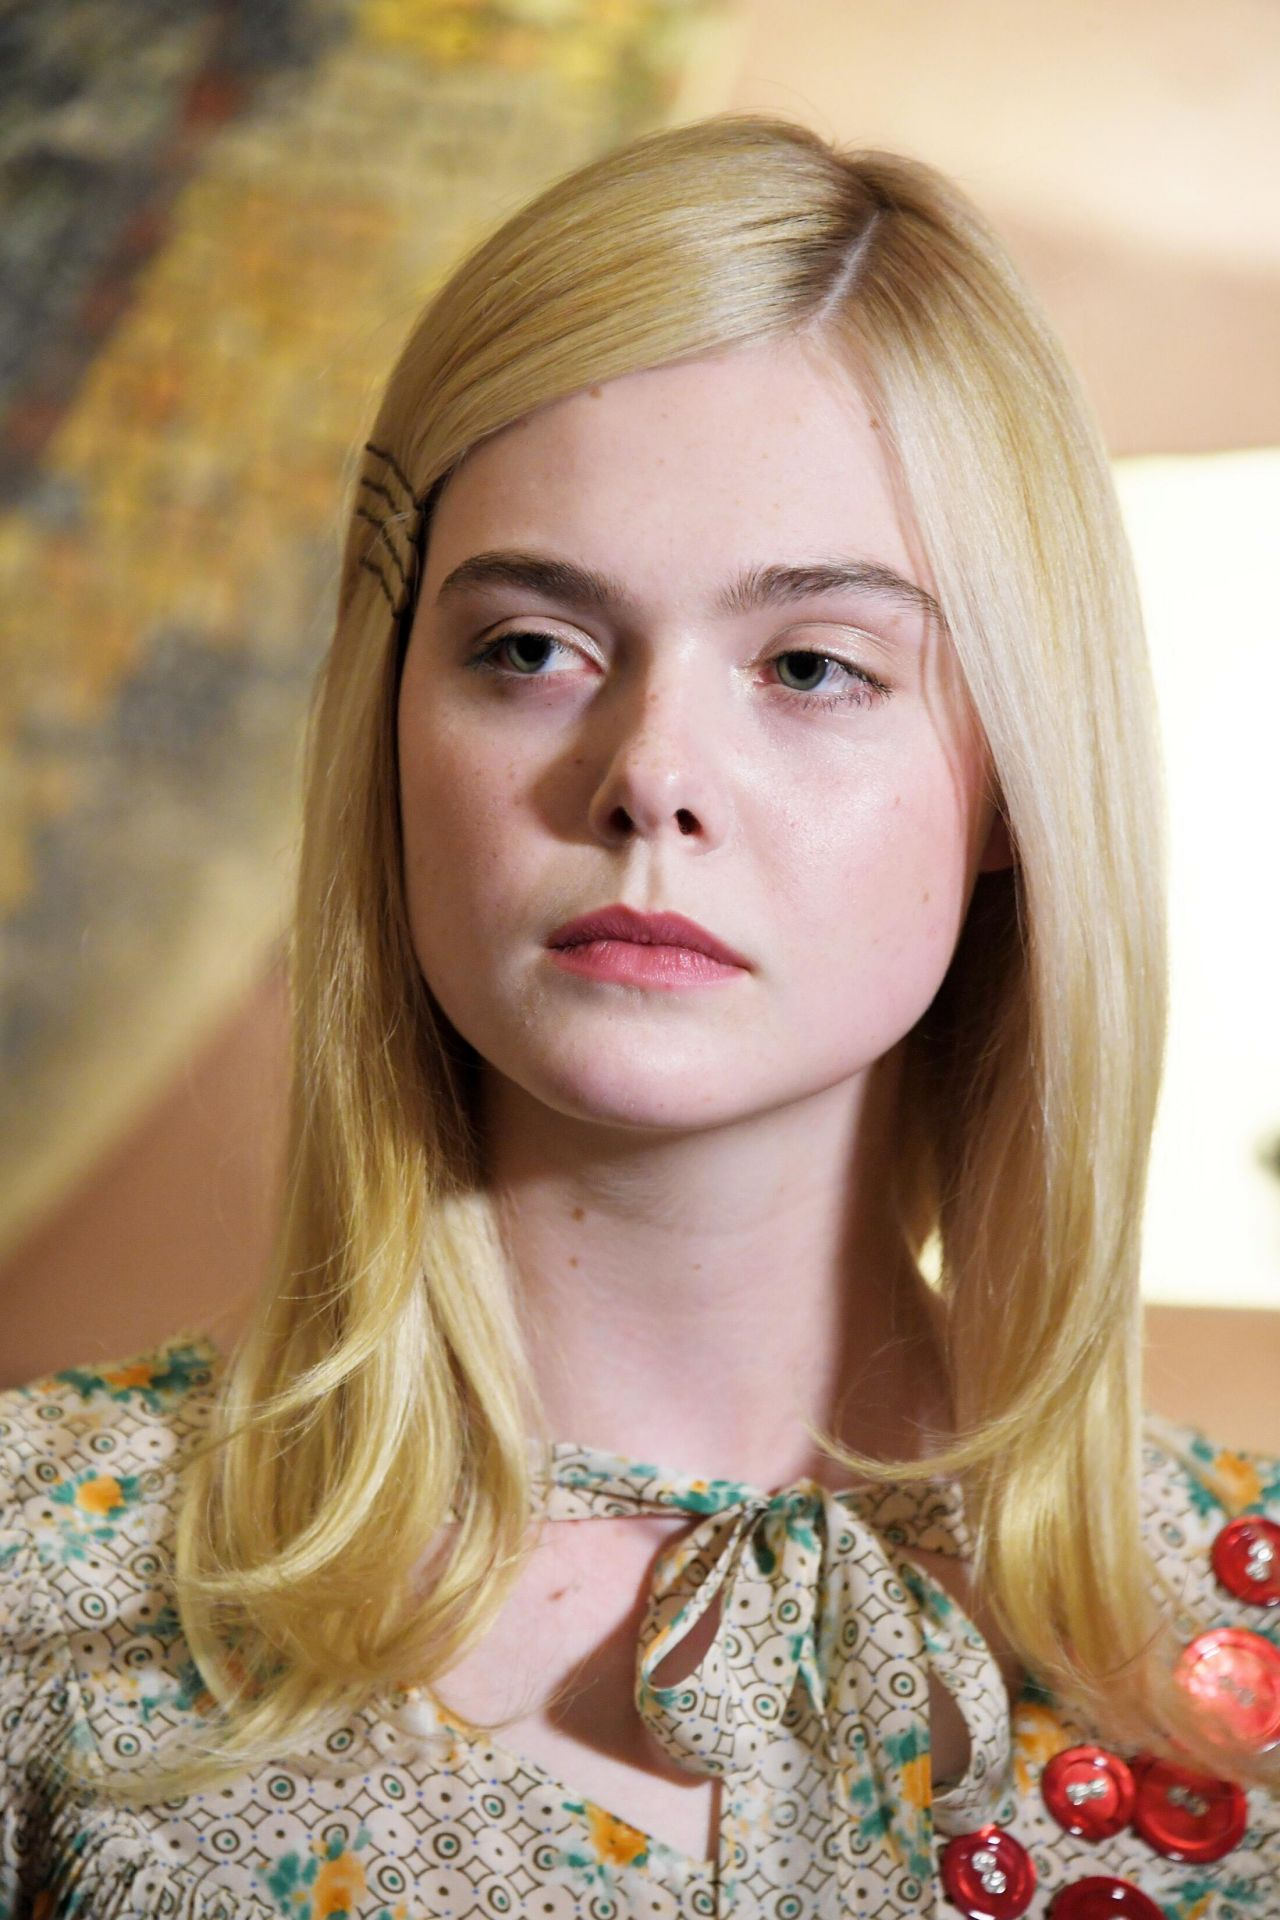 Elle Fanning Quot 3 Generations Quot Screening In Nyc 04 30 2017